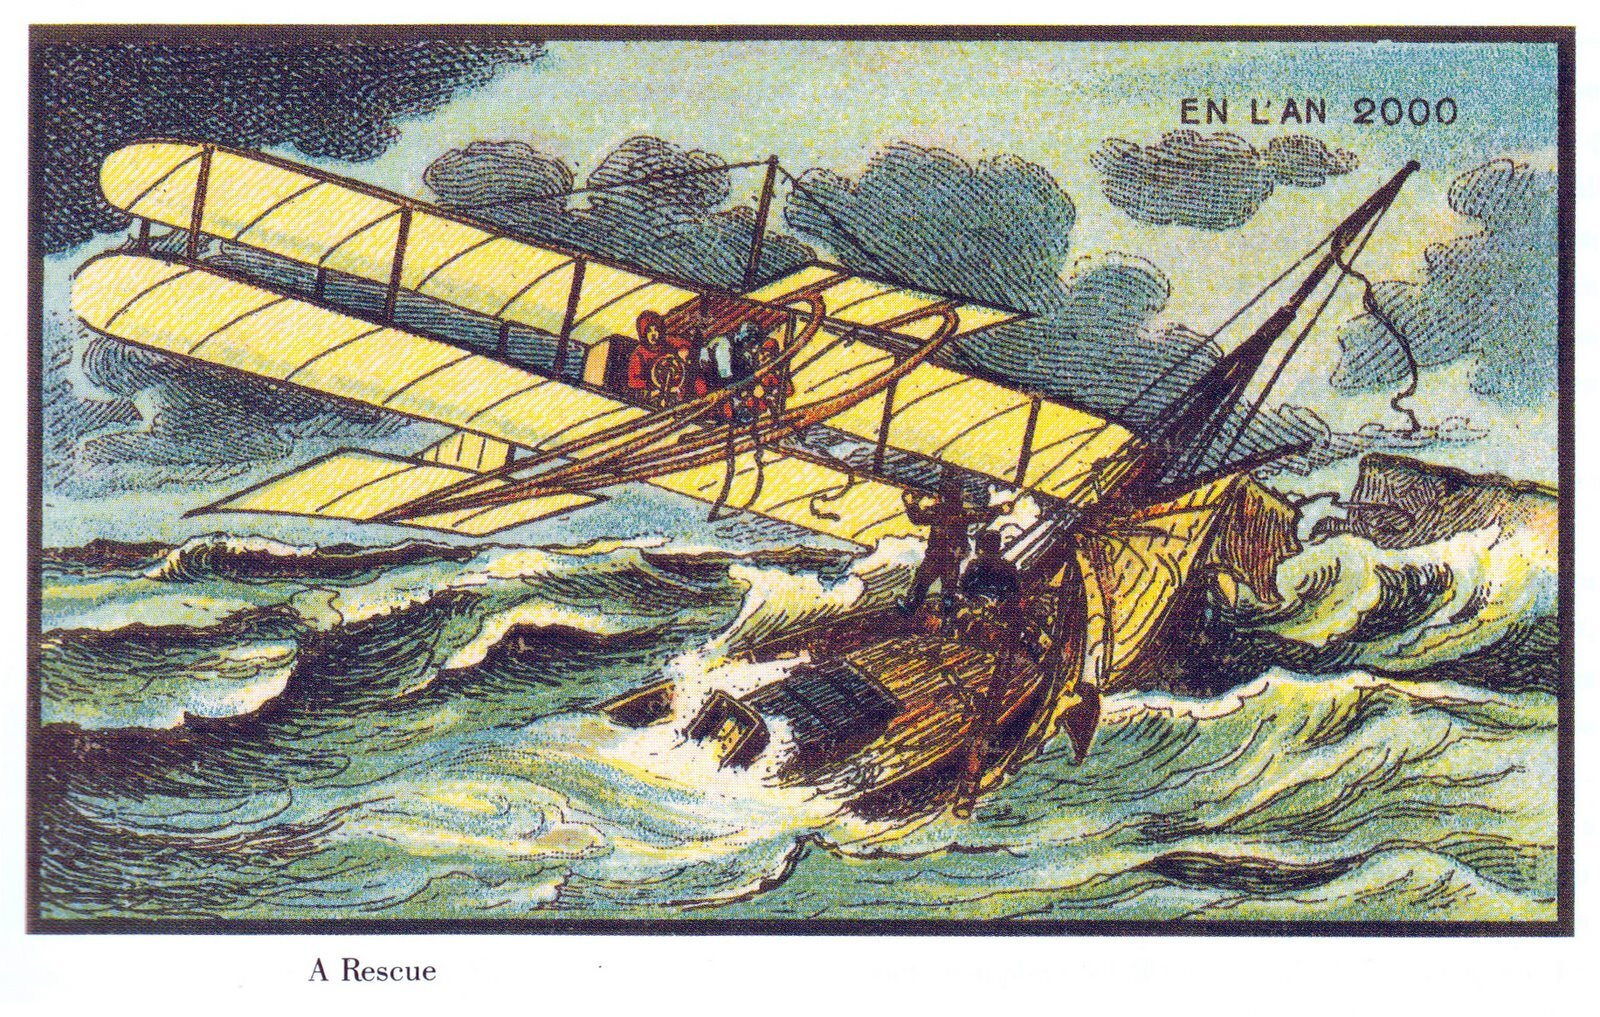 """""""A Rescue"""" is a wonderful, if impractical idea about rescue at sea. Depending on exactly when this card was drawn, the shape of the plane may have been inspired by the Wright Brother's first heavier-than-air flying machine, the Kitty Hawk."""